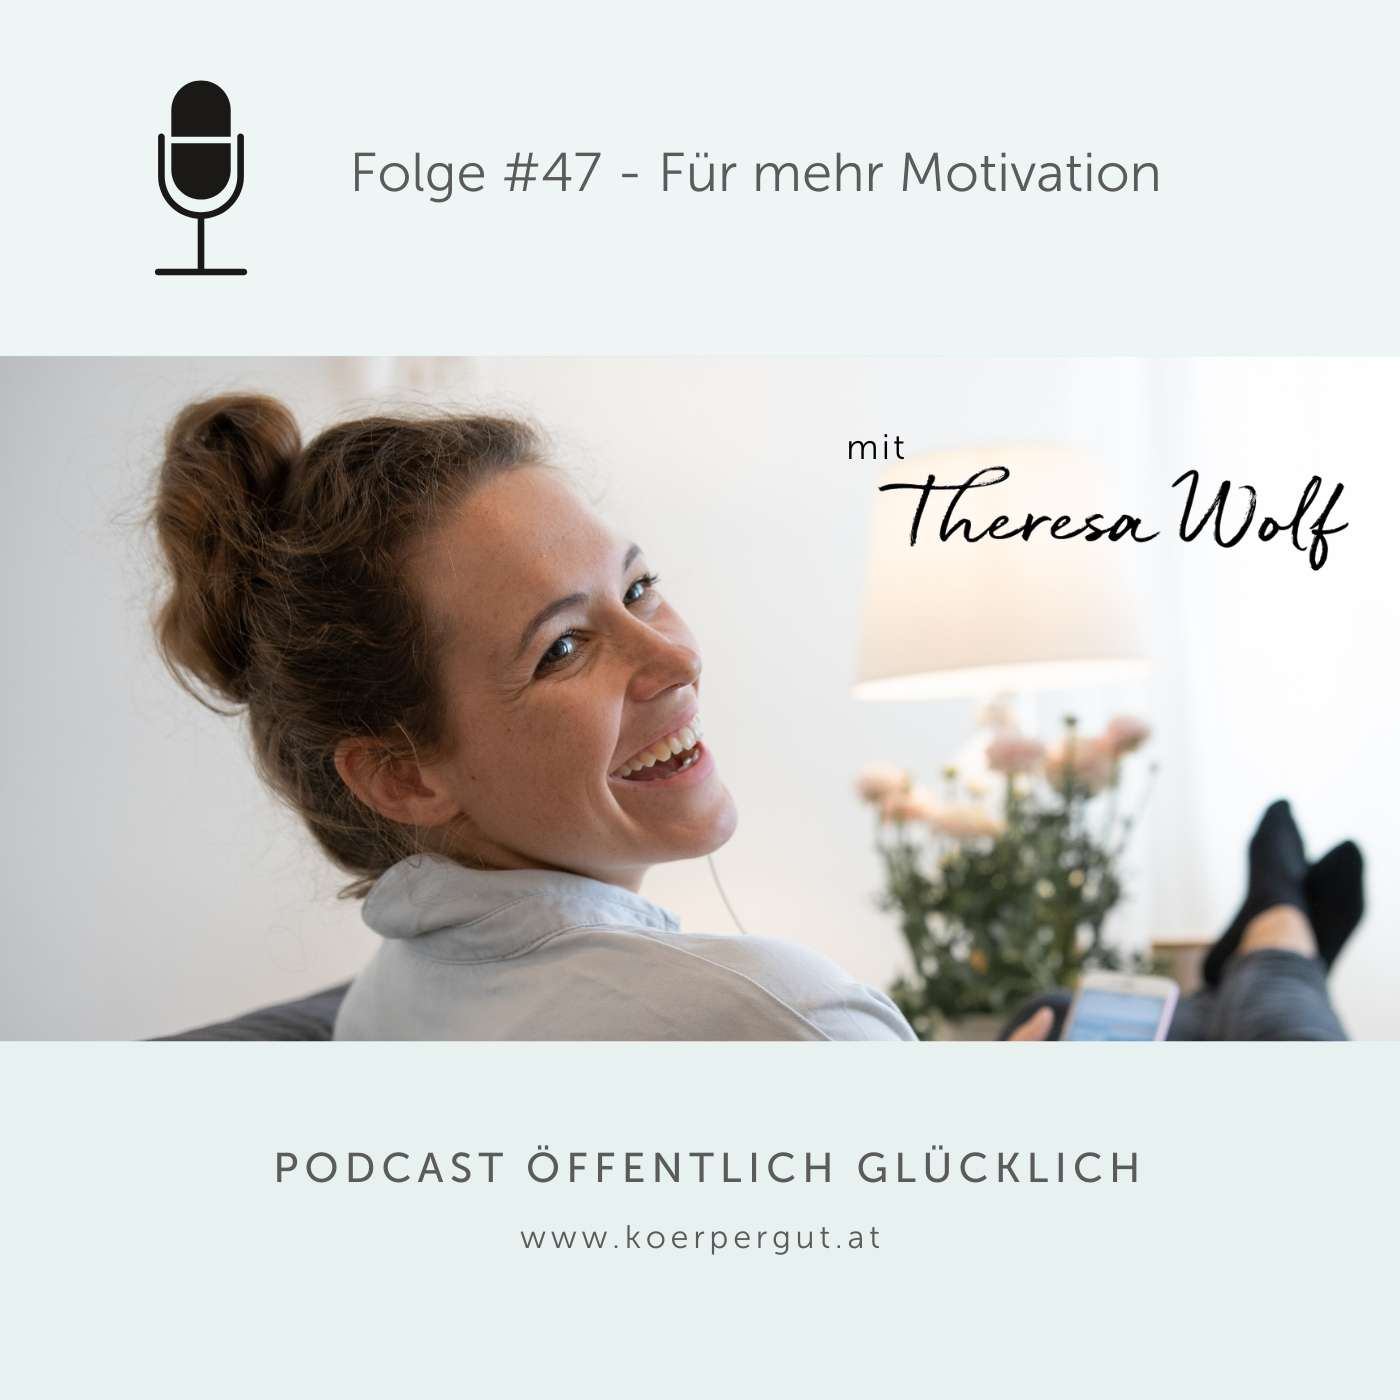 #47 - für mehr motivation